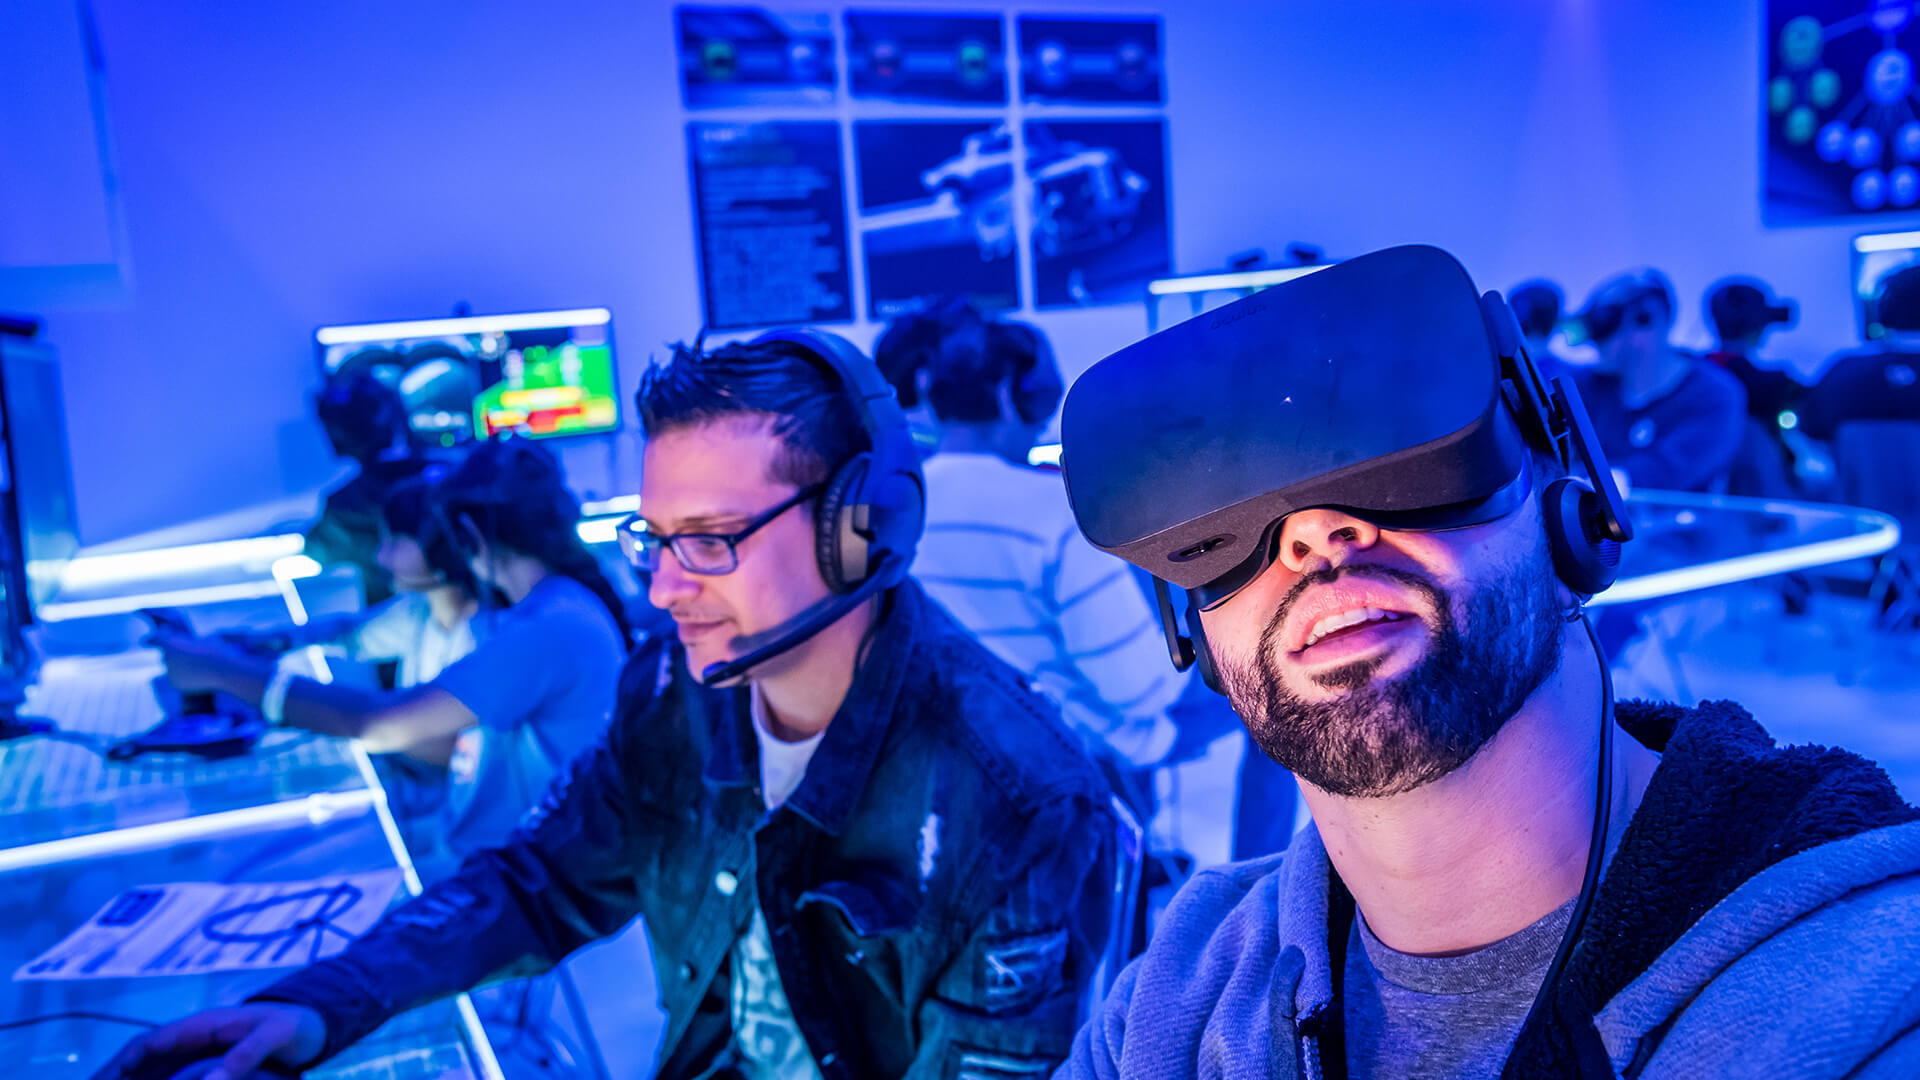 Visitors use virtual reality technology in the Flight Lab experience.